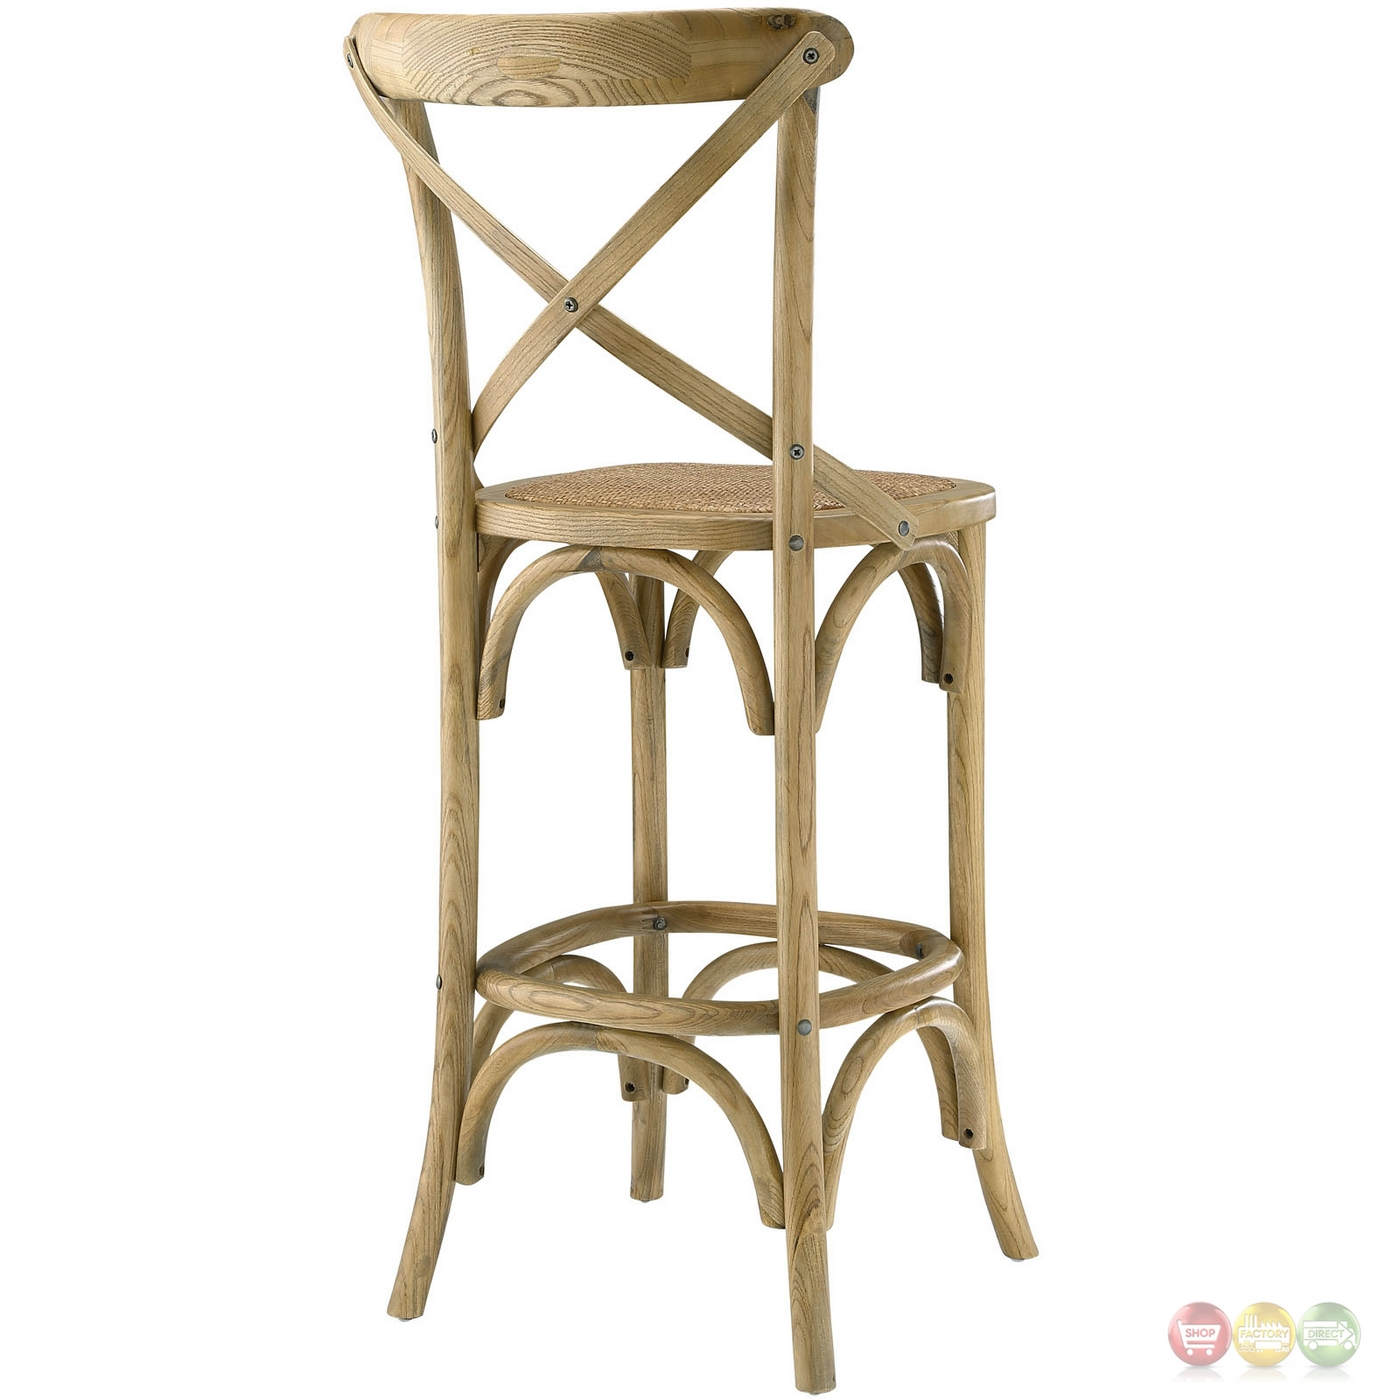 Superb img of  Country inspired Bar Stool w/ Rattan Seat & Tapered Legs Natural with #963537 color and 1400x1400 pixels